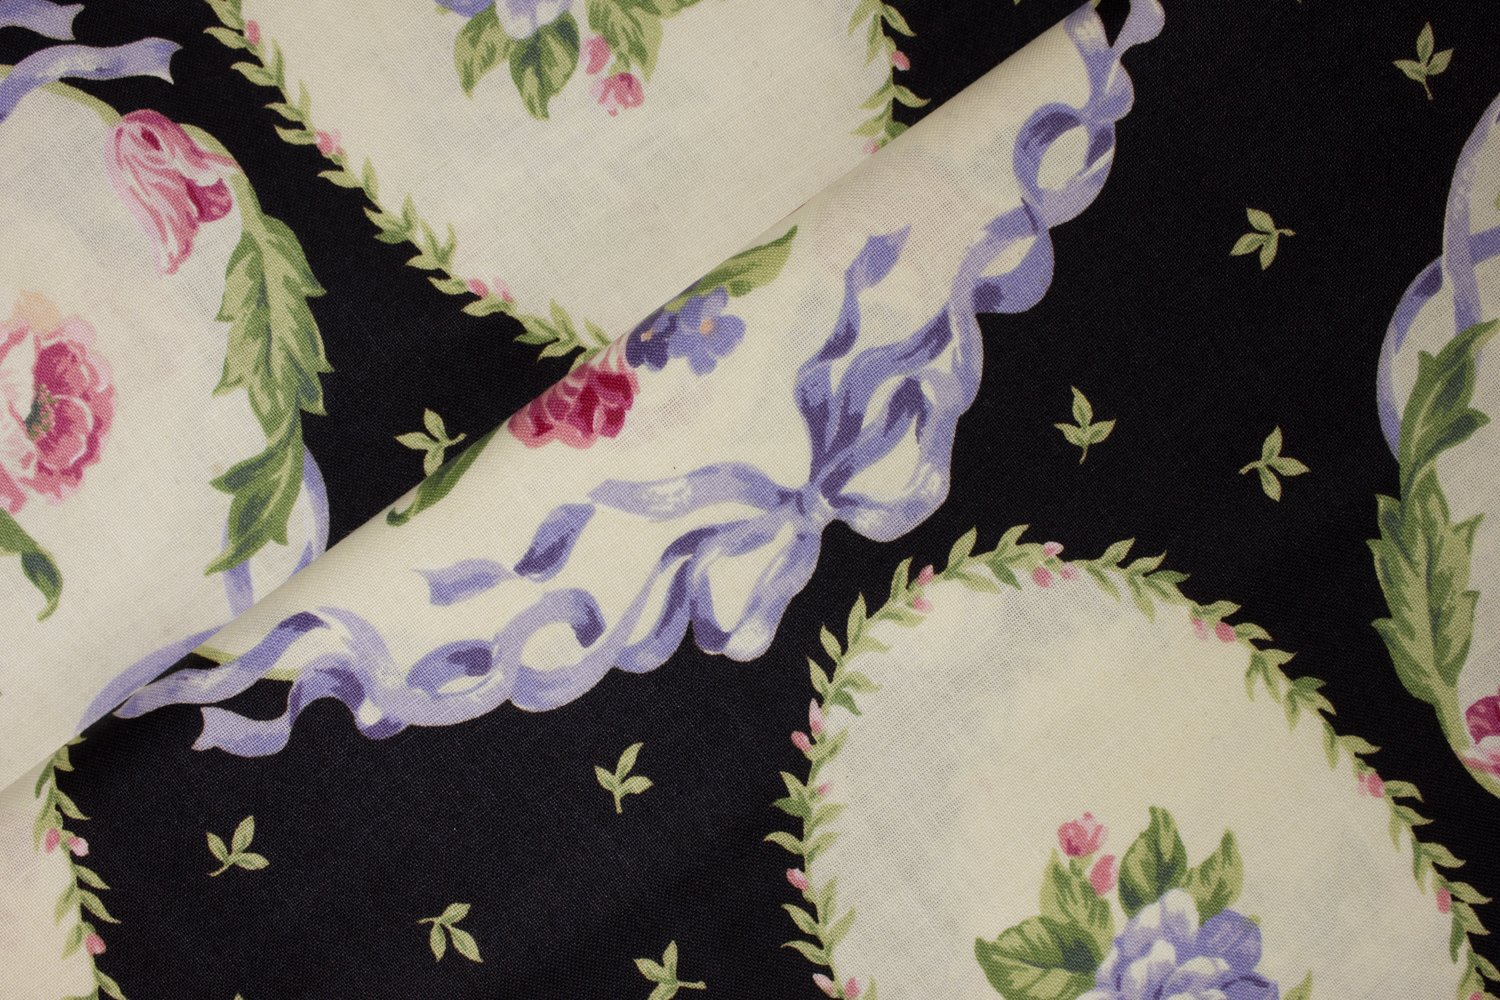 Cream Floral Ovals on Black by Marie for VIP by Cranston